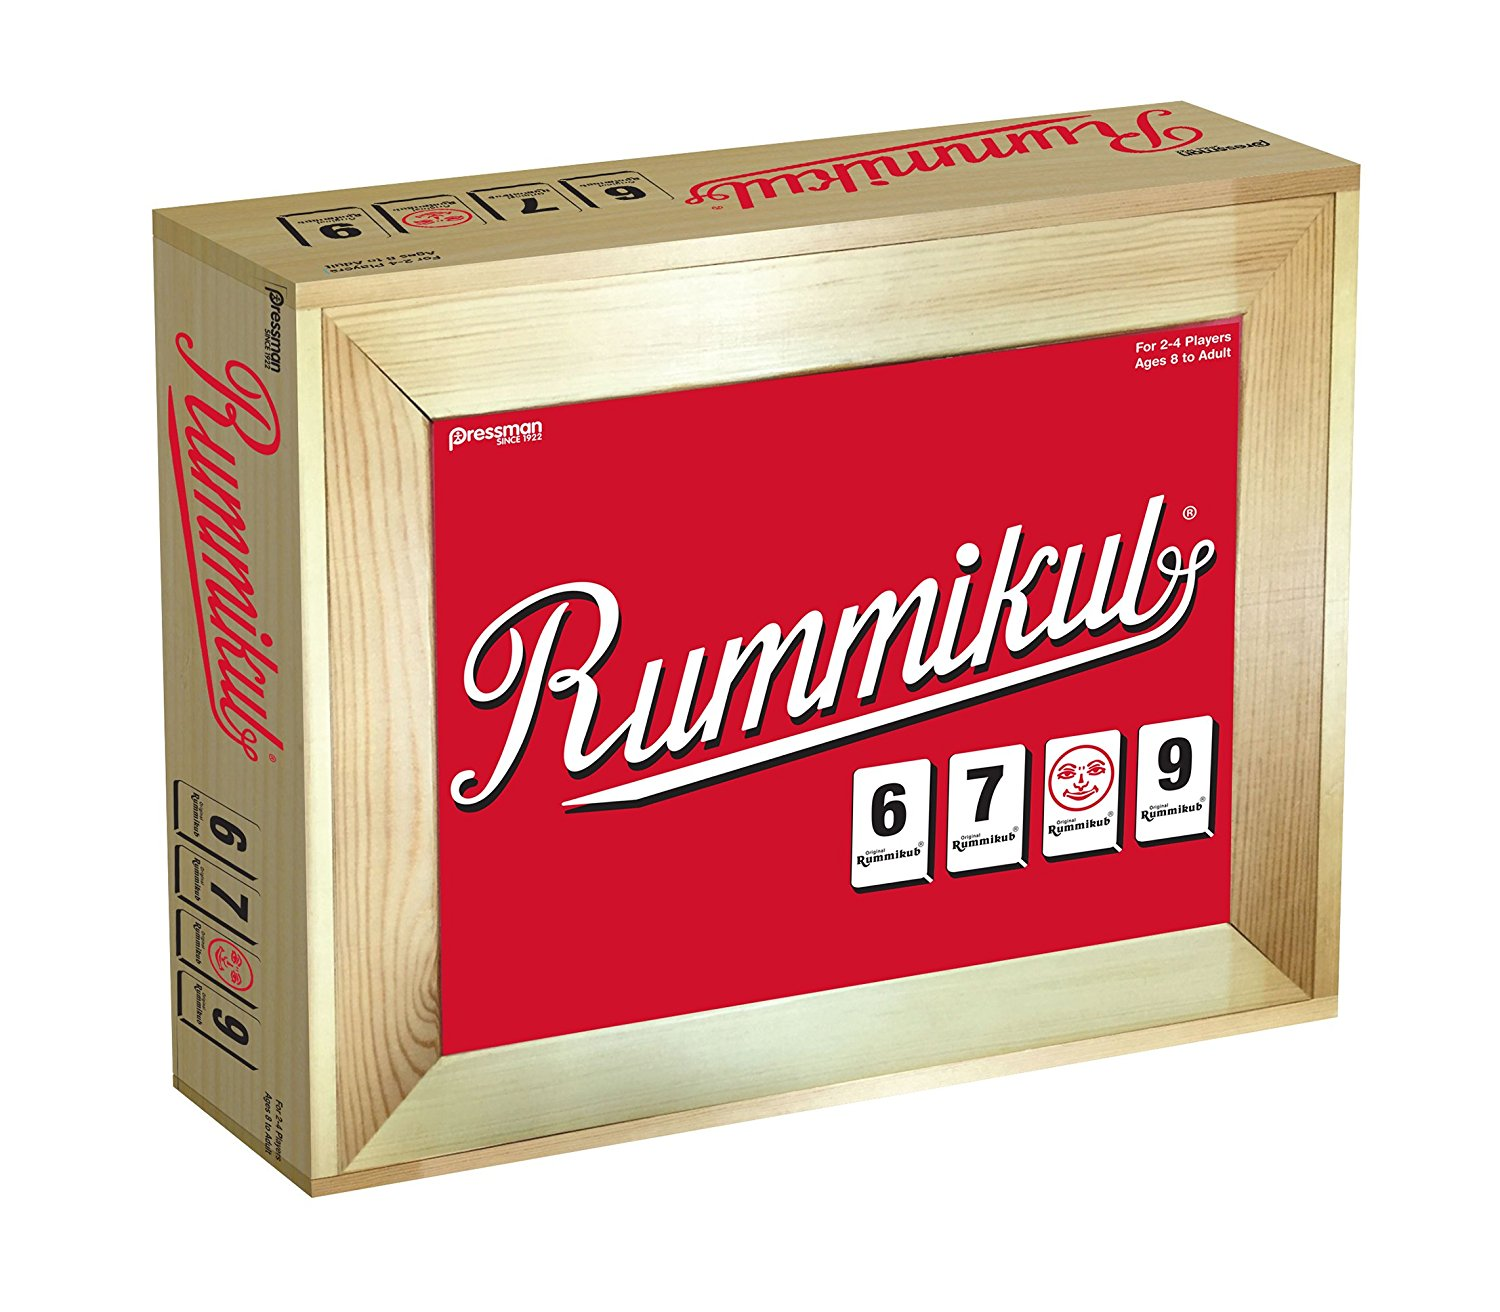 Rummikub: Dlx Lg Number in Wooden Box, Easy-to-see tiles for young and old By Pressman Toy by